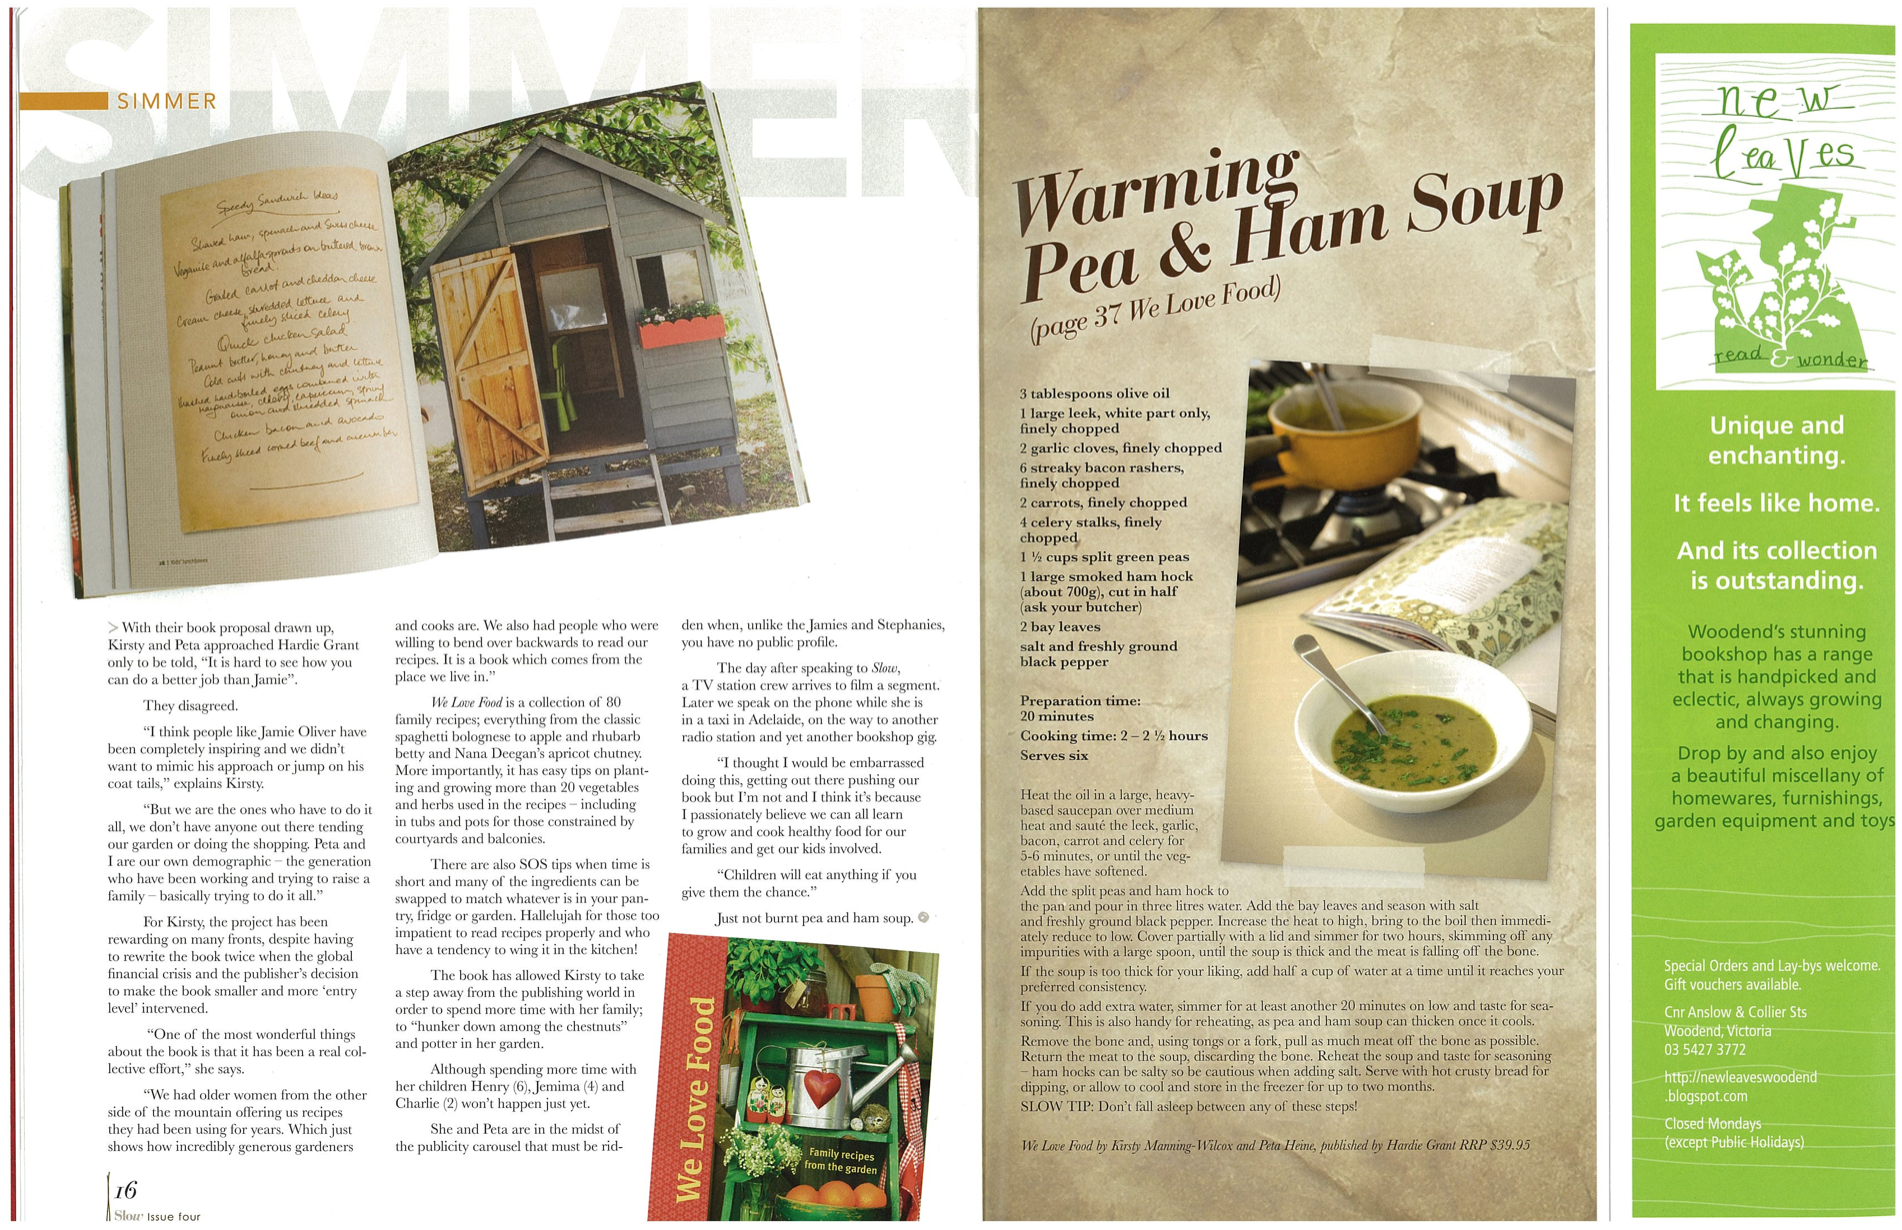 As featured in  Slow  magazine  , Issue 4, Autumn 2010